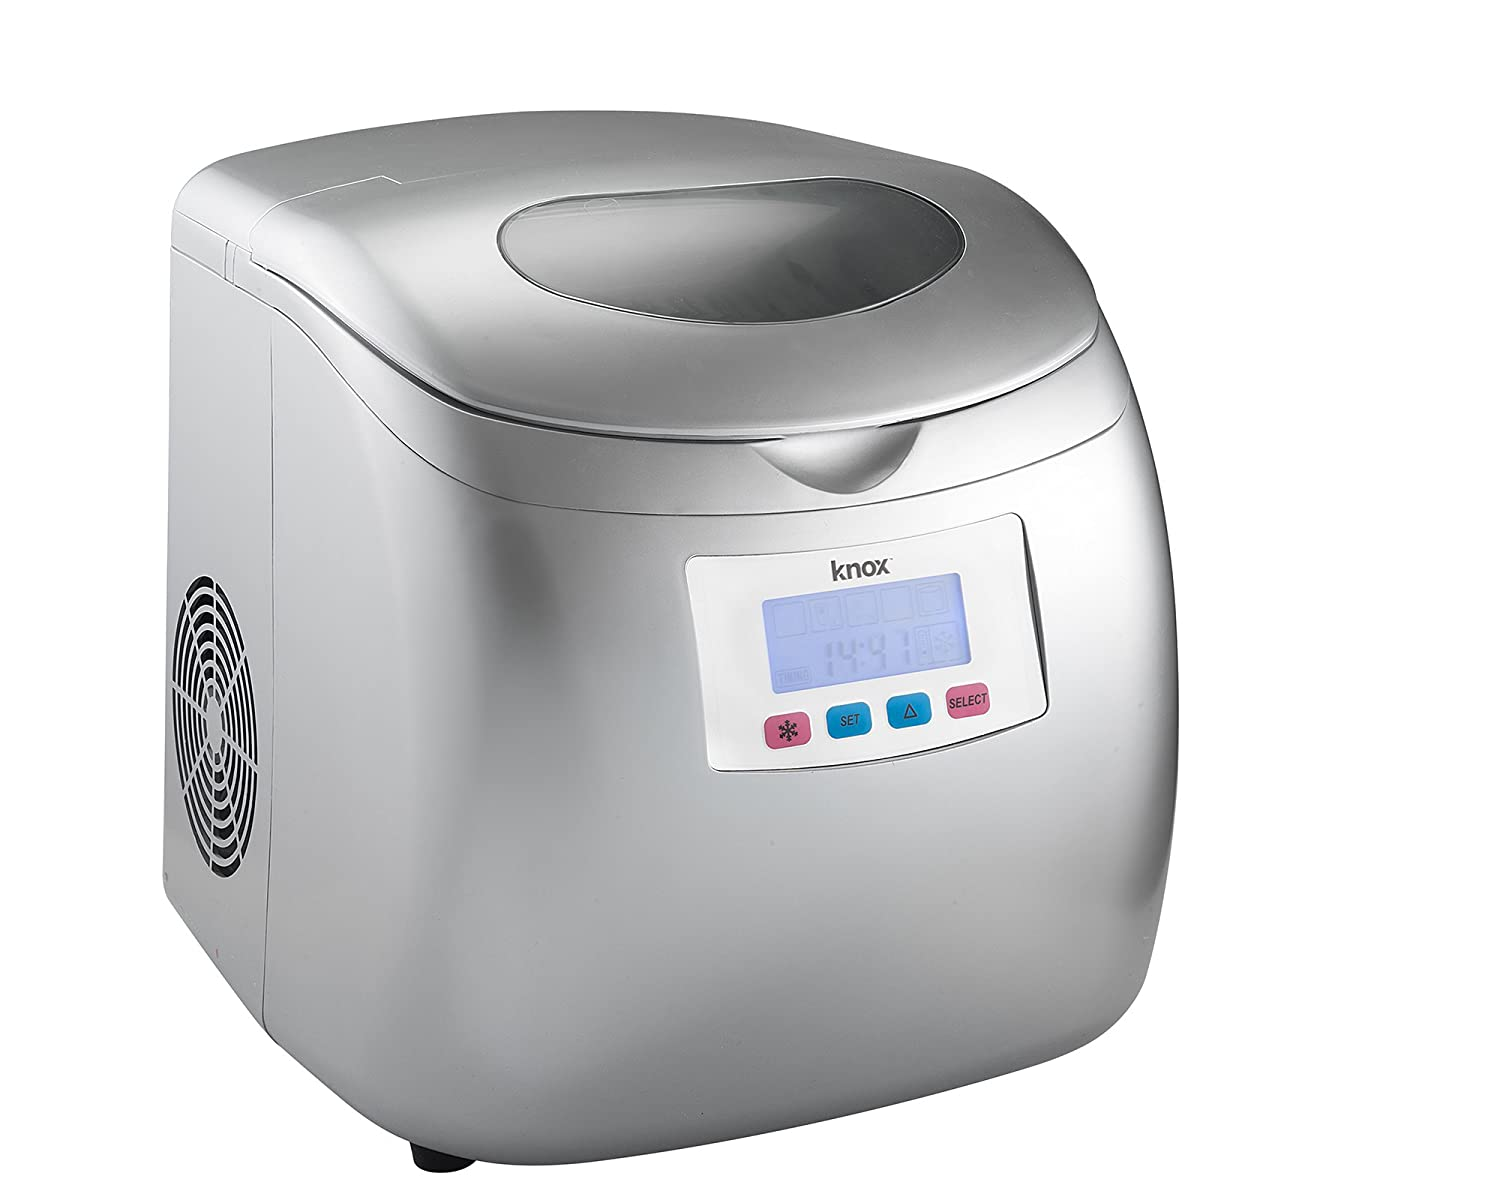 Knox Gear Portable Compact Ice Maker w/LCD Display (Silver) - 2.8-Liter Water Reservoir, 3 Selectable Cube Sizes - Yield of up to 26.5 Pounds of Ice Daily KN-IM27S